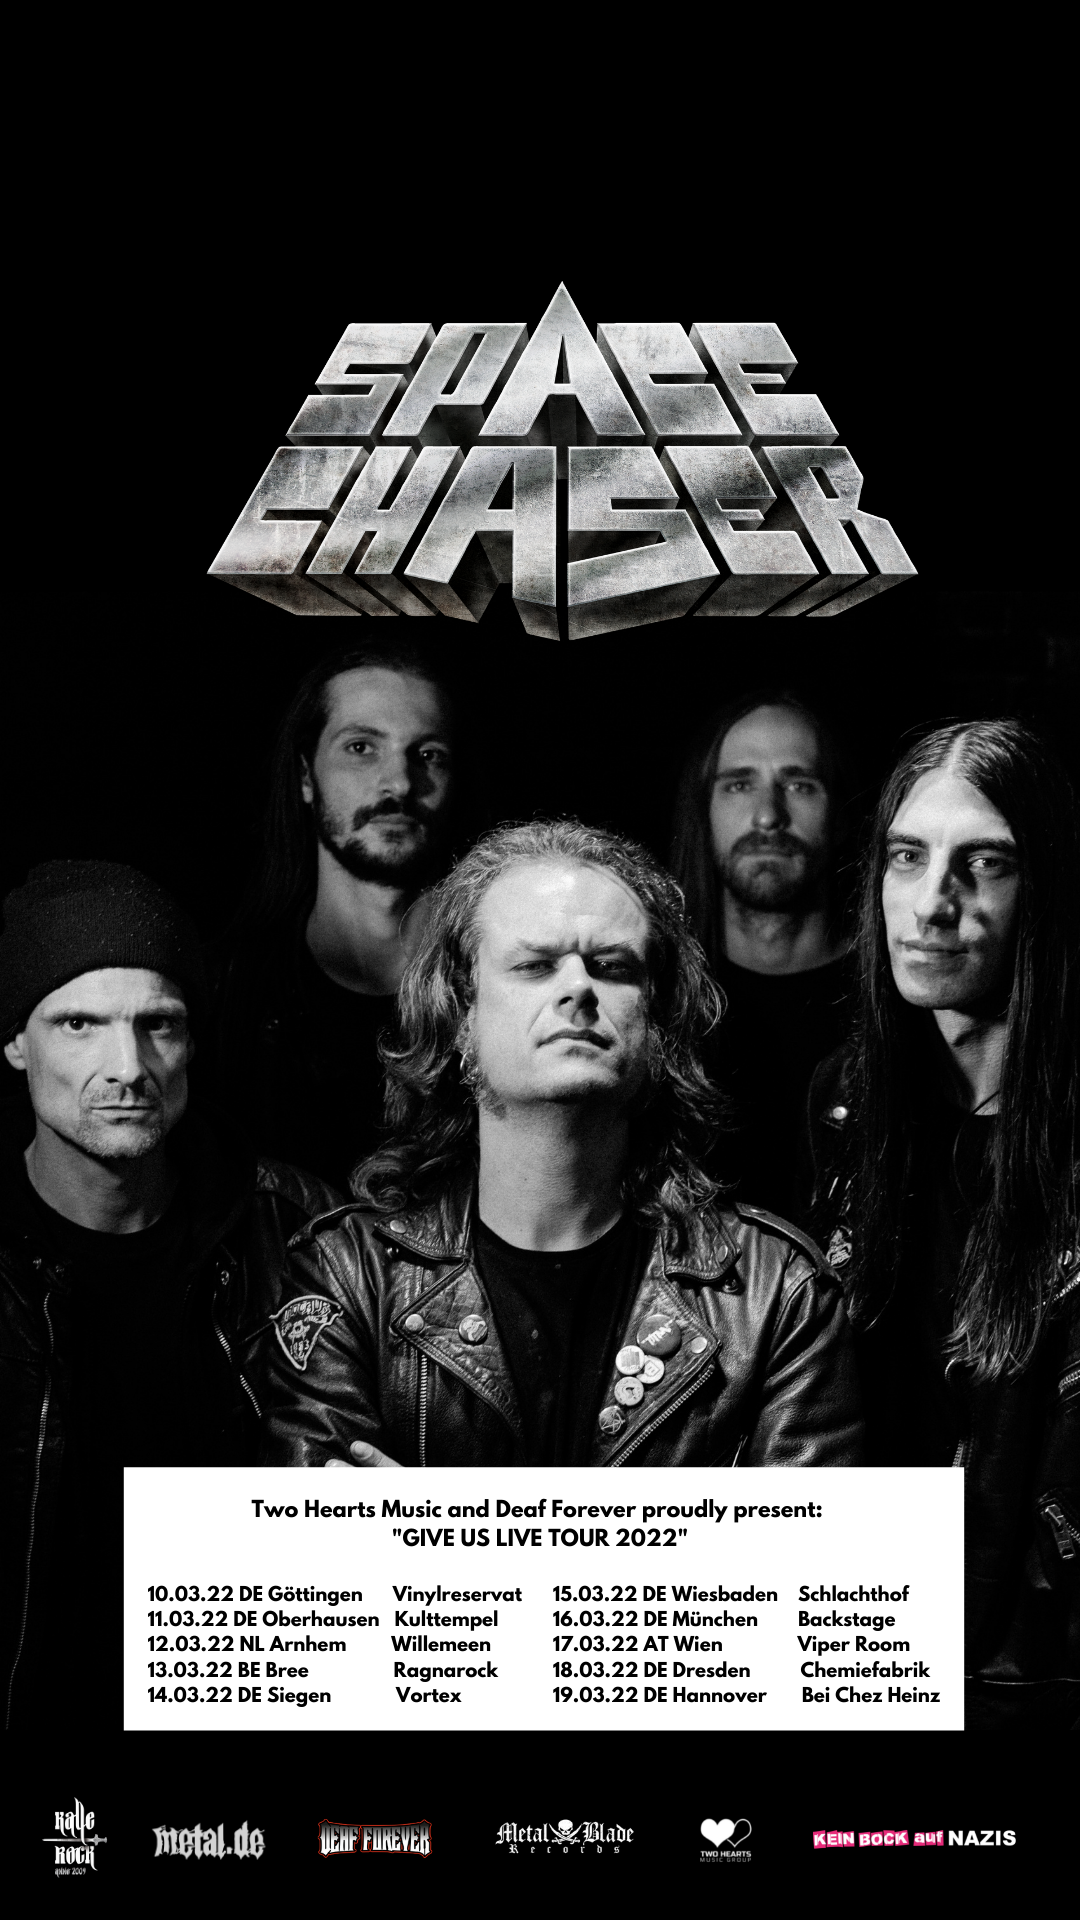 Spacer Chaser Give Us Live Tour 2022